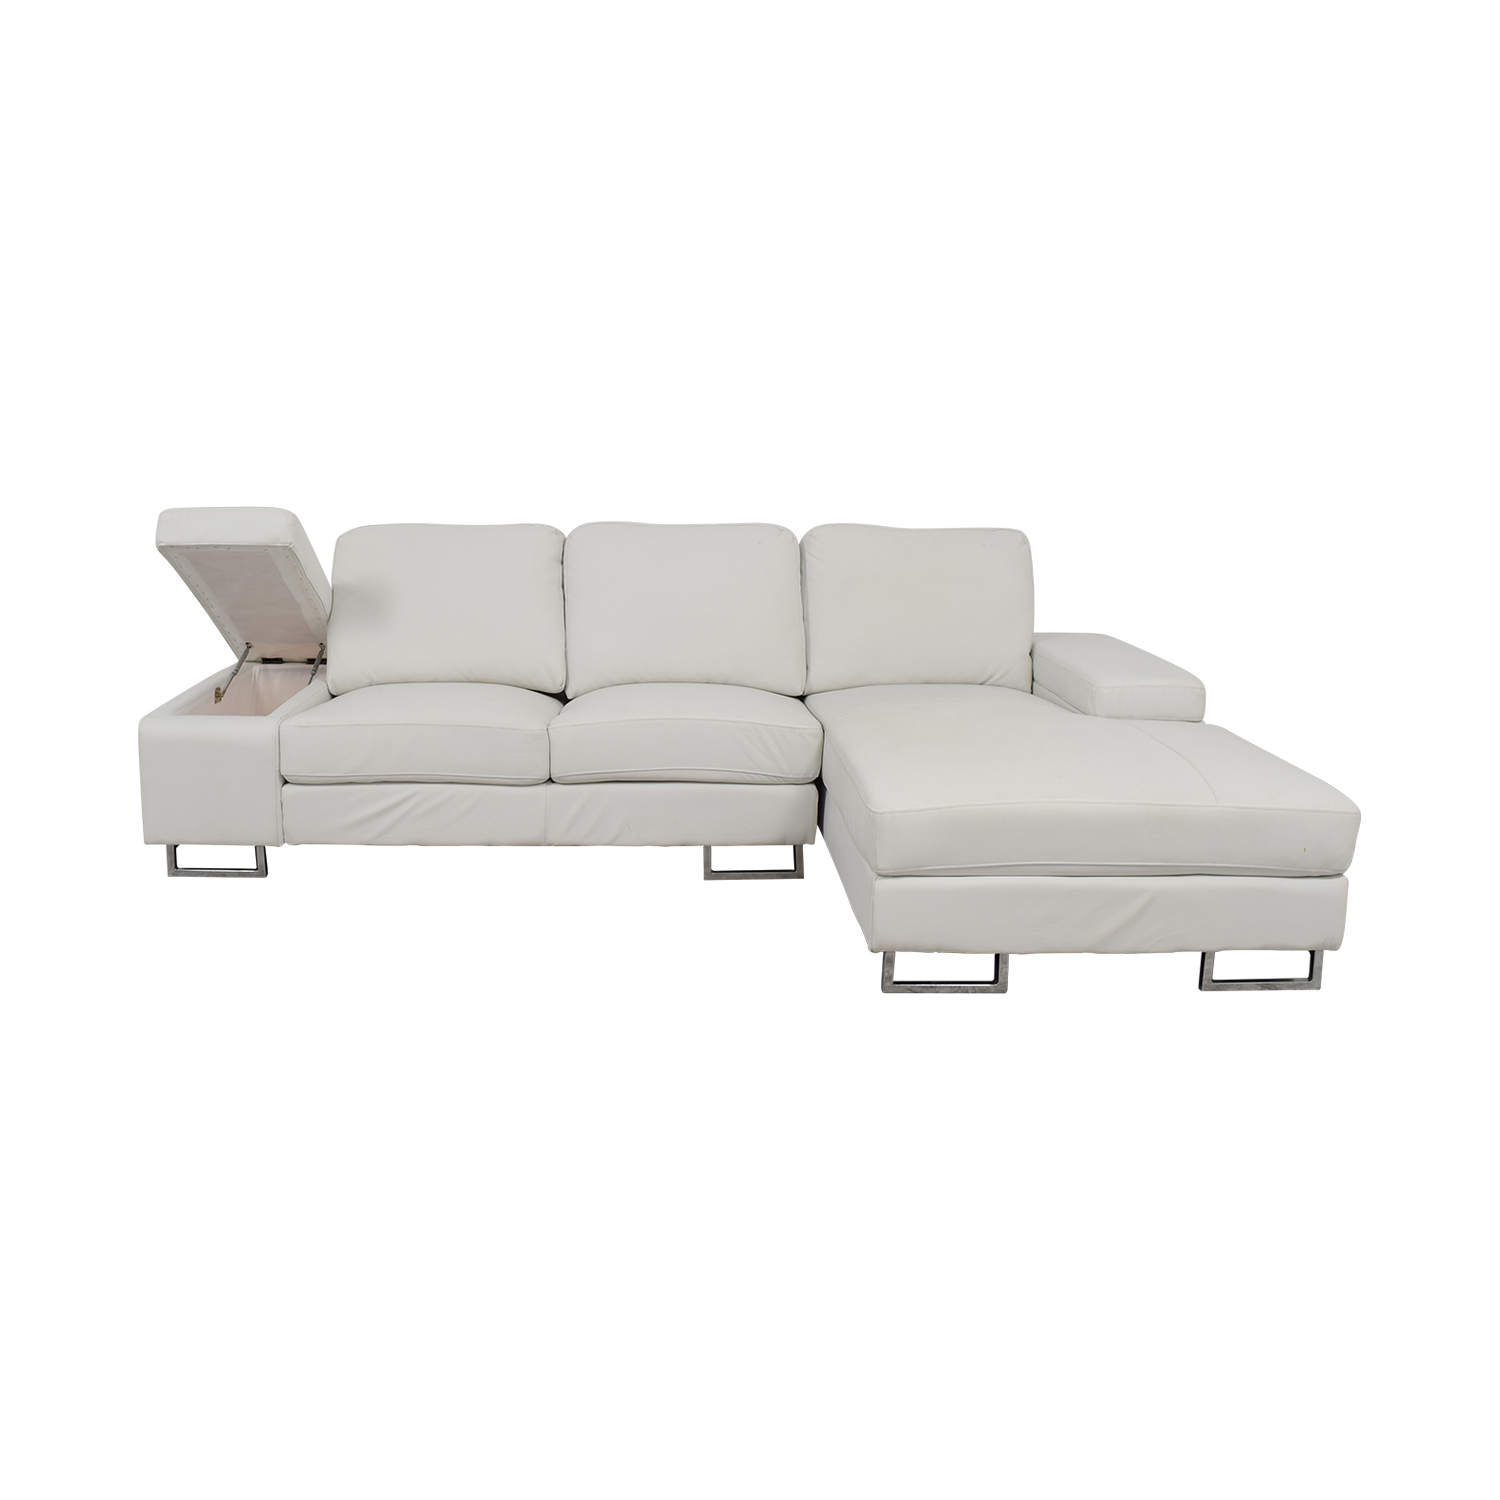 Lumens Lumens White Leather Chaise Sectional With Arm Storage nyc